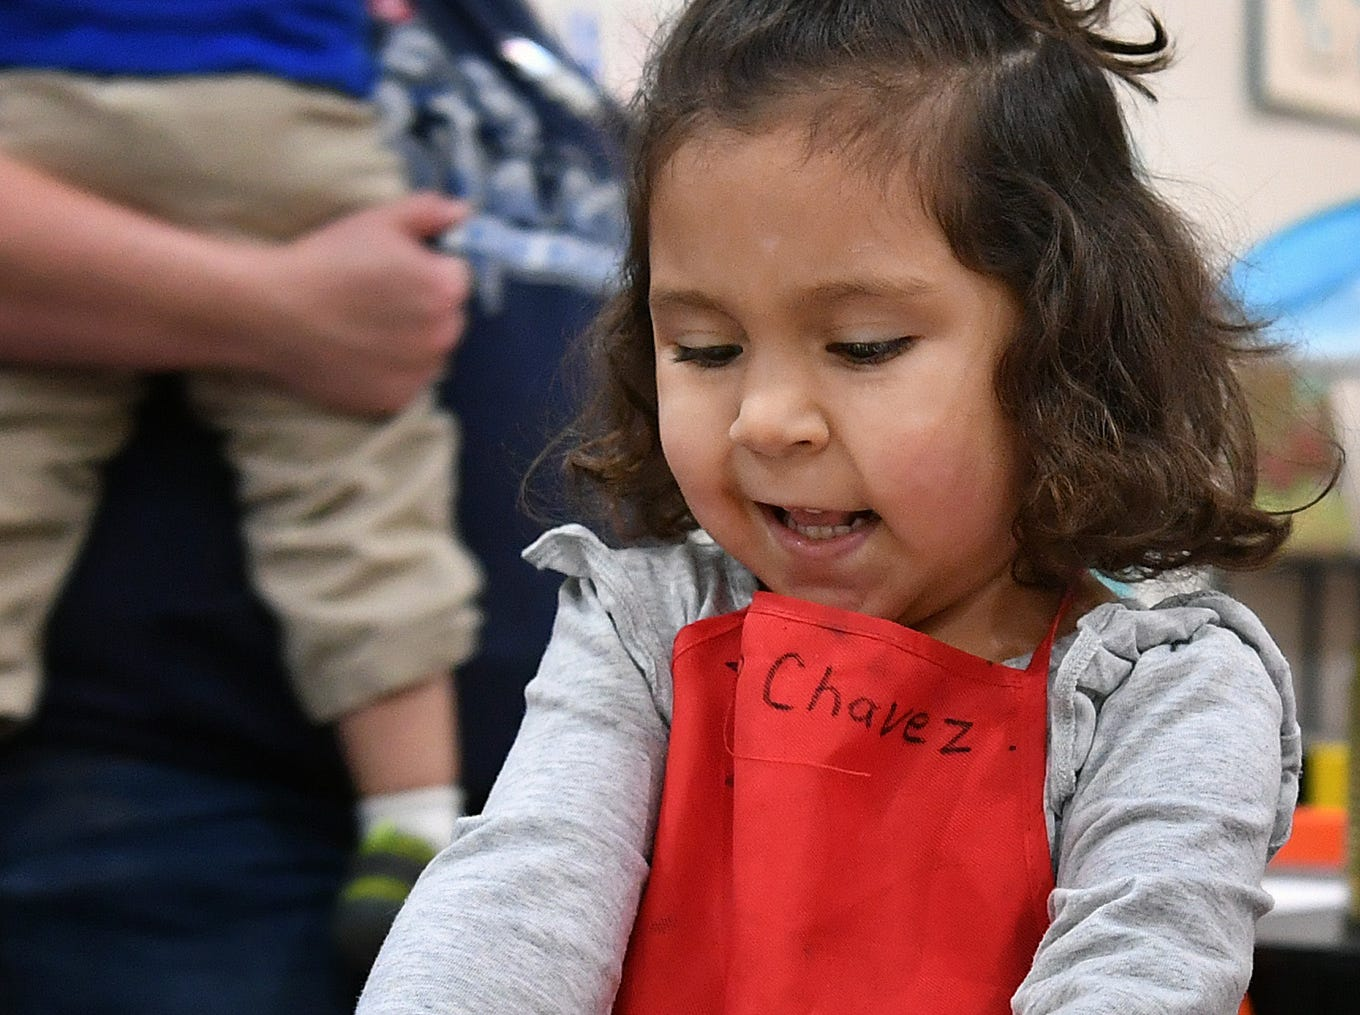 Zoe Chavez squeezes a bubblewrap envelope of paint while playing at CrashWorks STEAM Studio & Makerspace. Each Wednesday features a different Mommy and Me event for kids from newborn to 5 years-old.